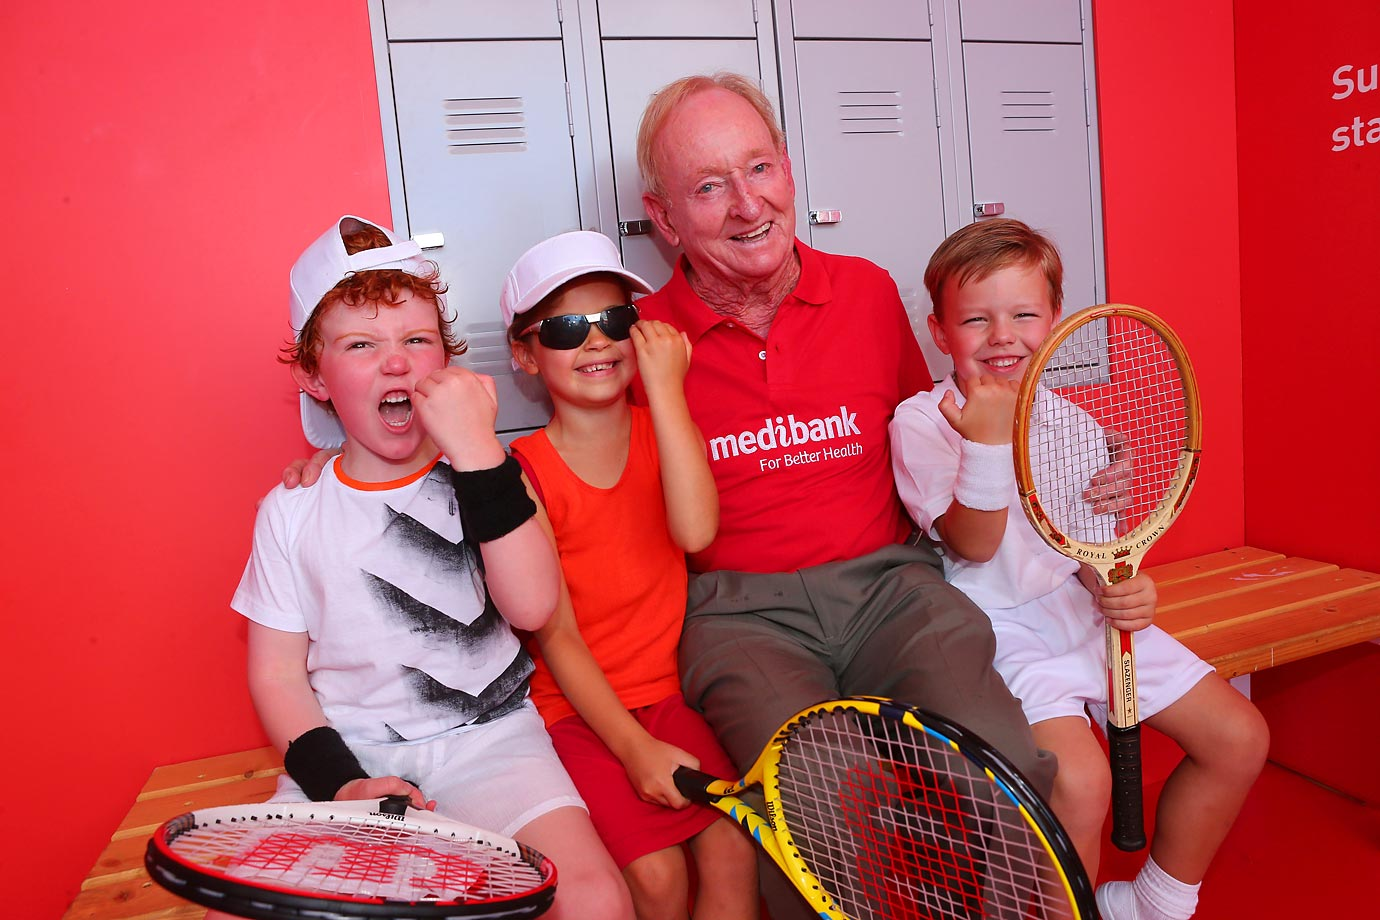 Rod Laver poses with young fans.